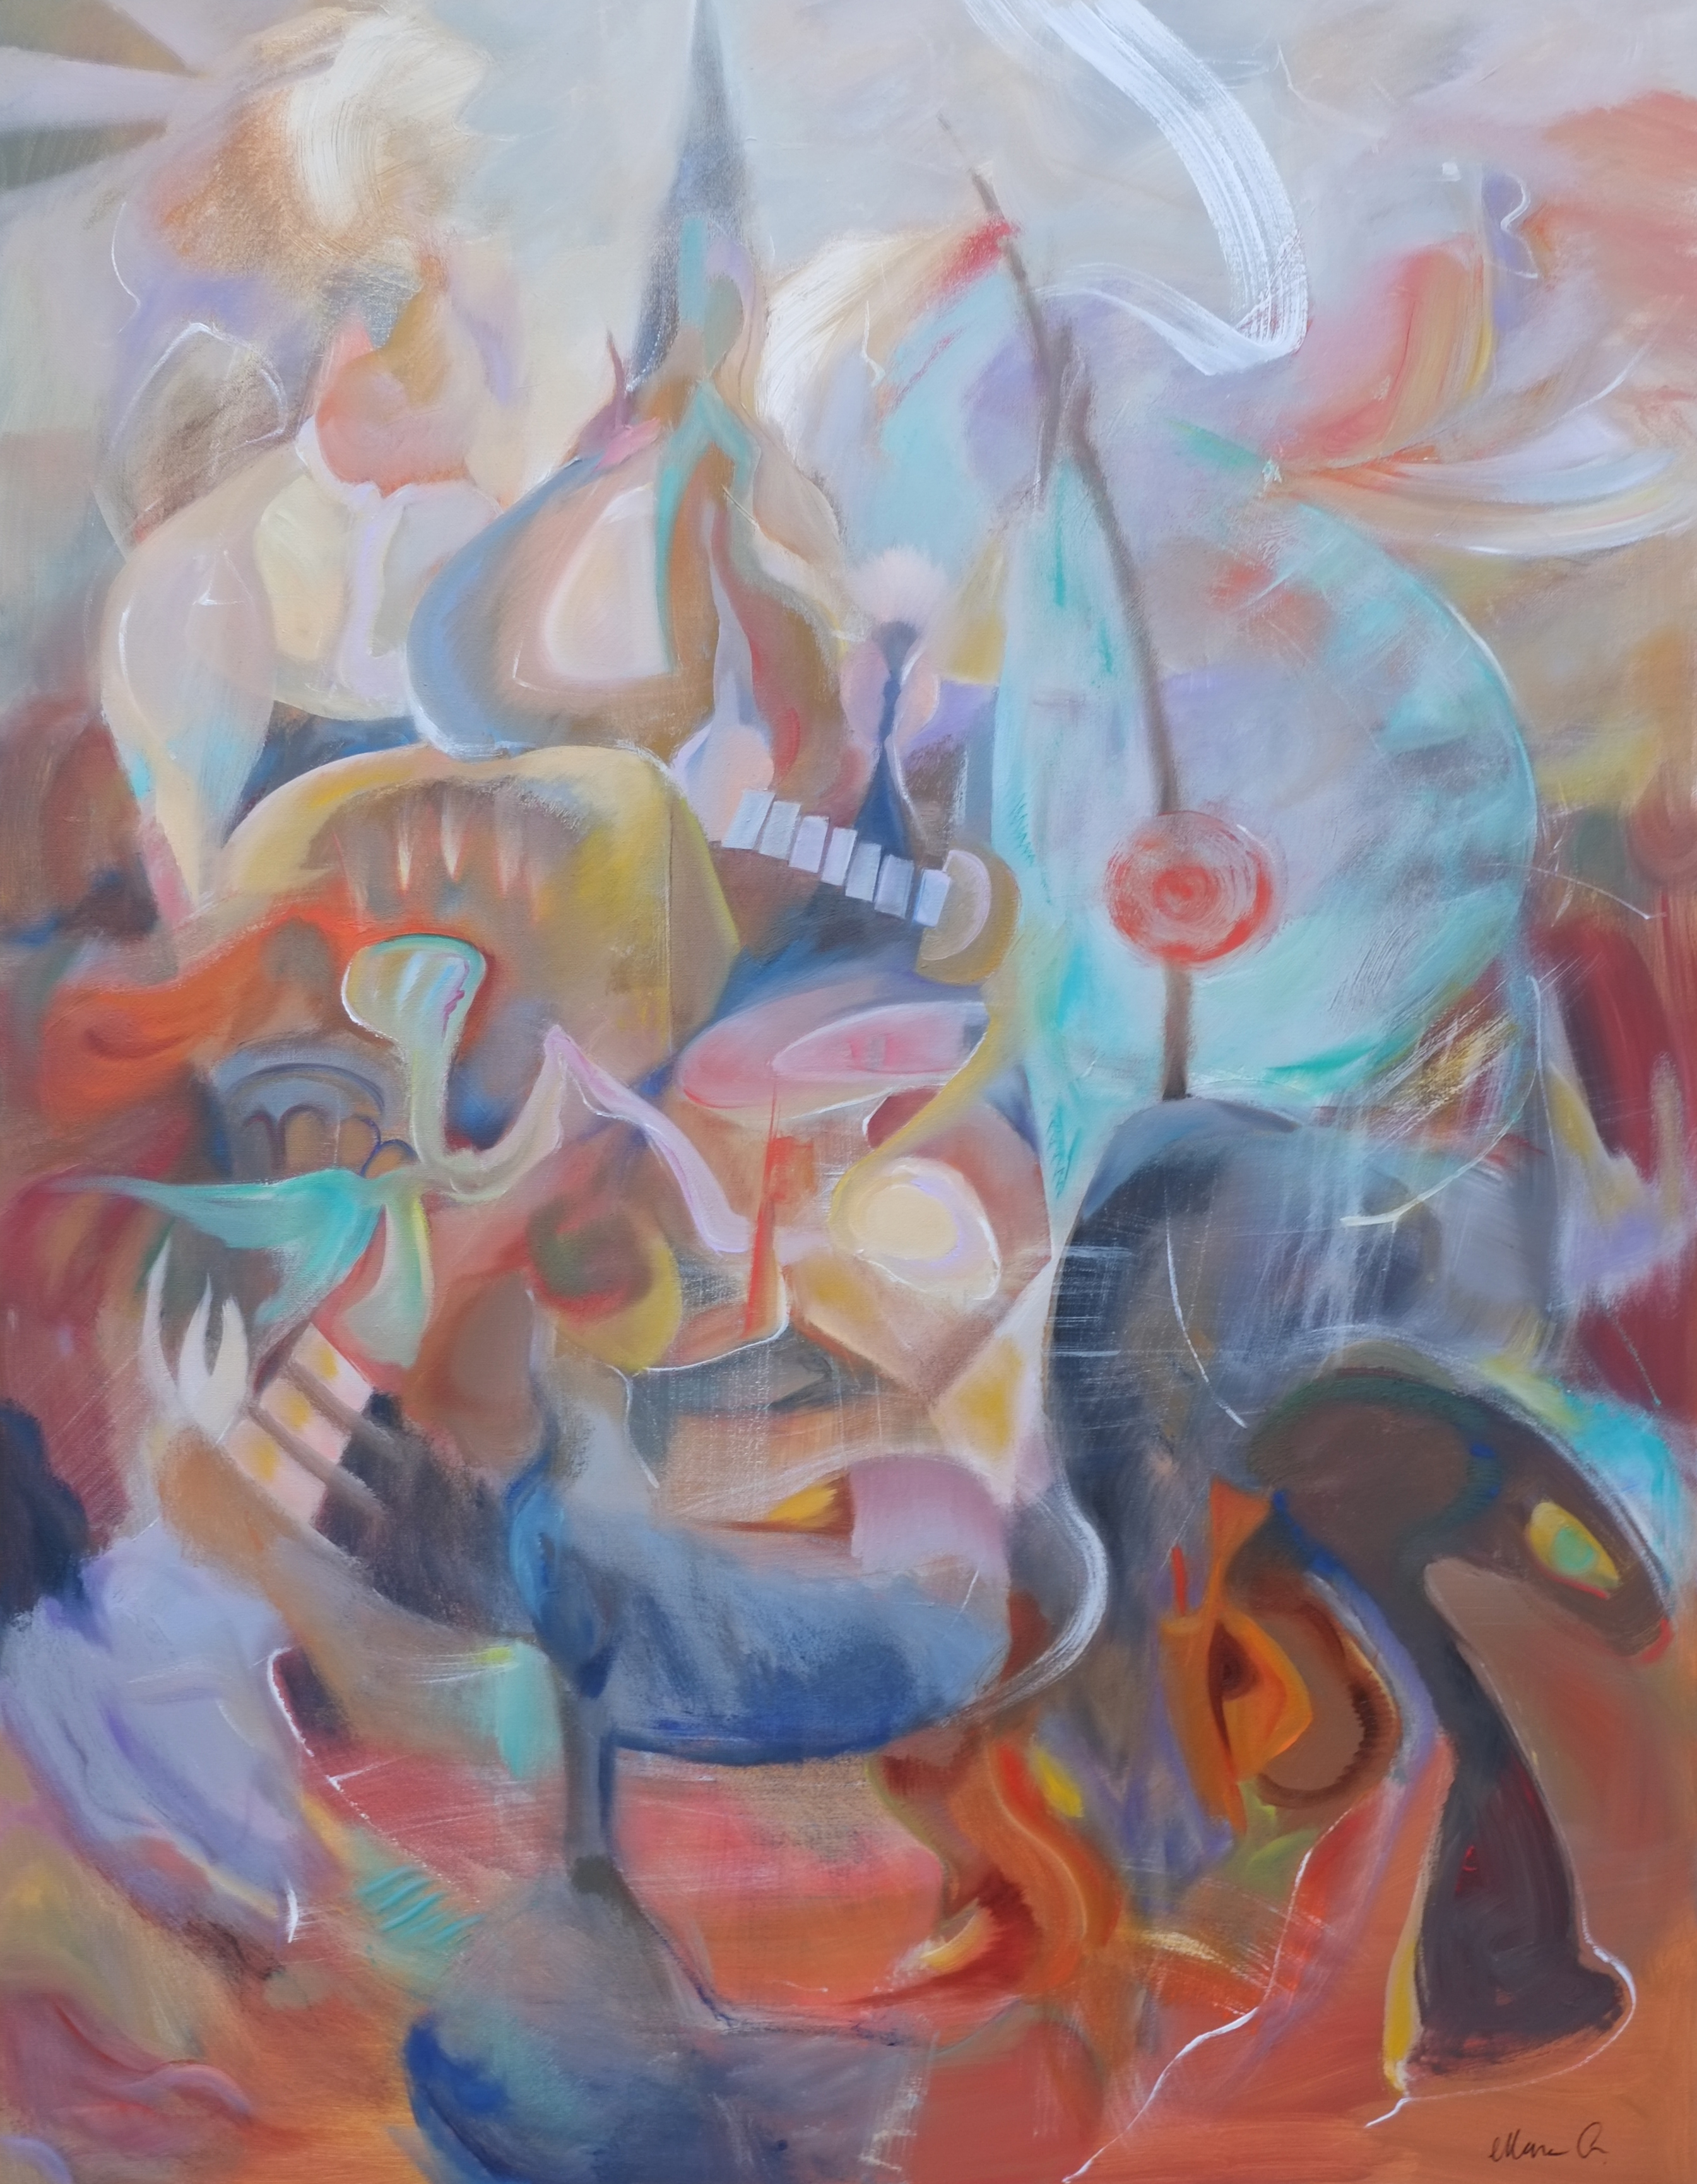 Abstraction with  figurative elements